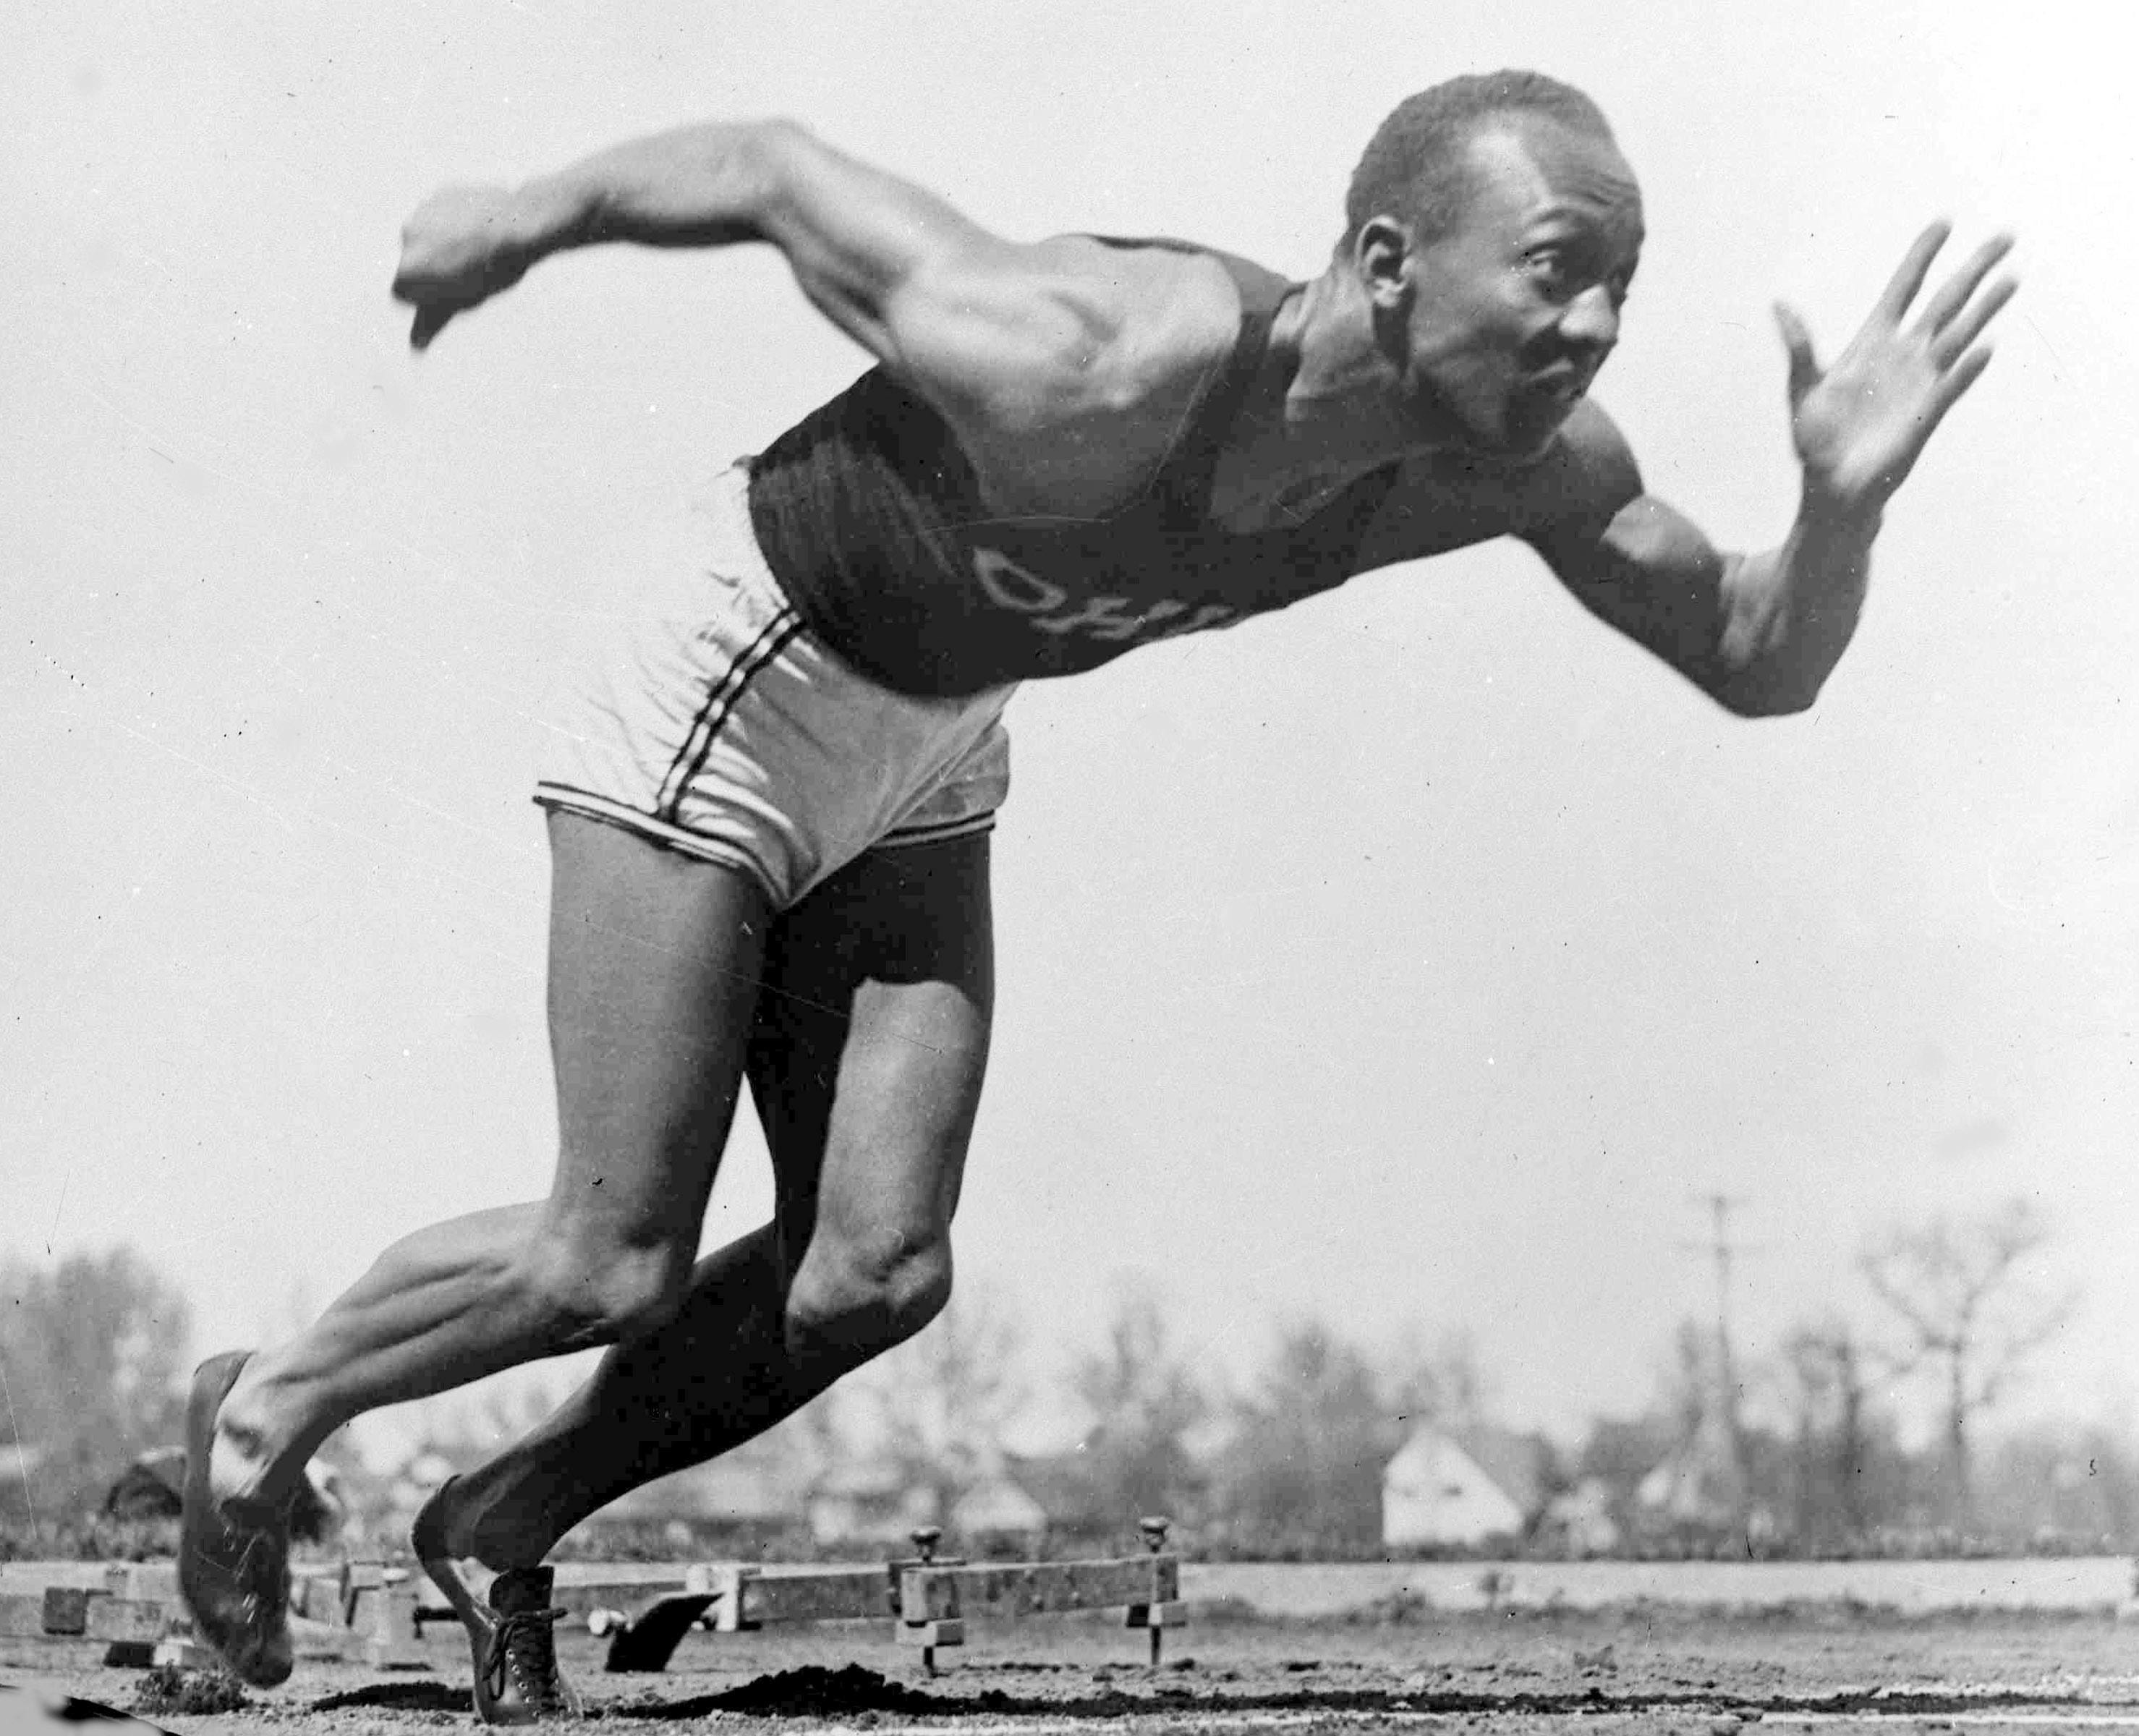 Today in History: Ohio State's Jesse Owens won first of his 4 gold medals